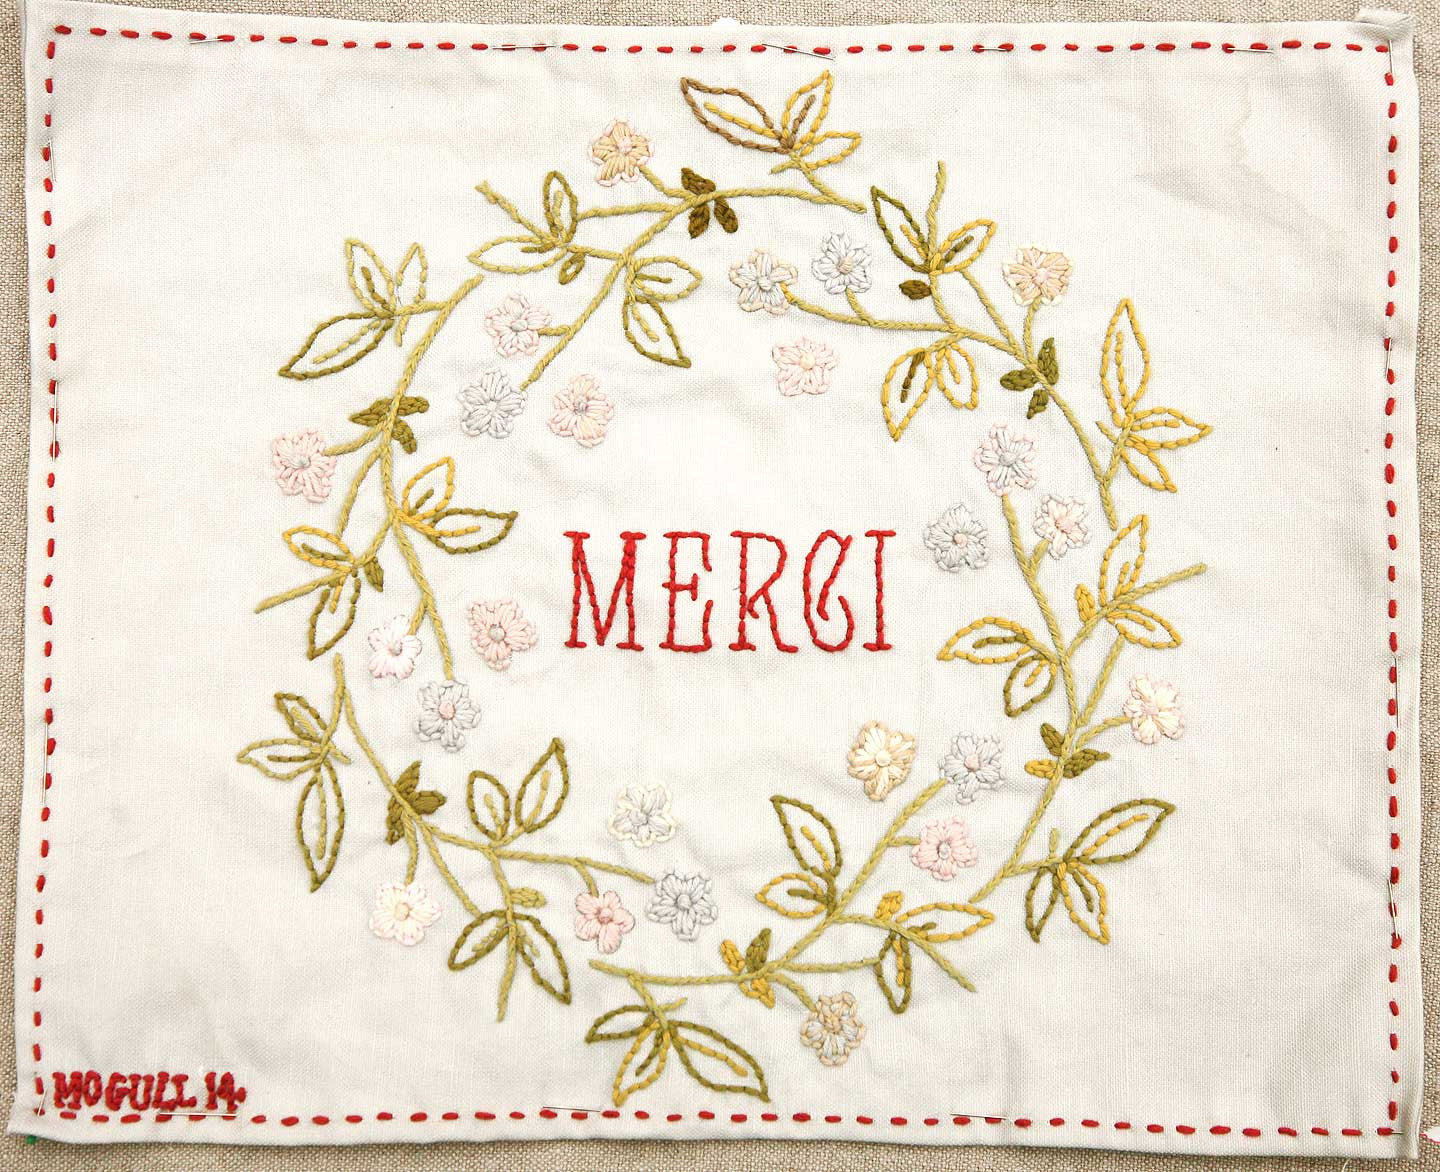 Merci Embroidery Sampler